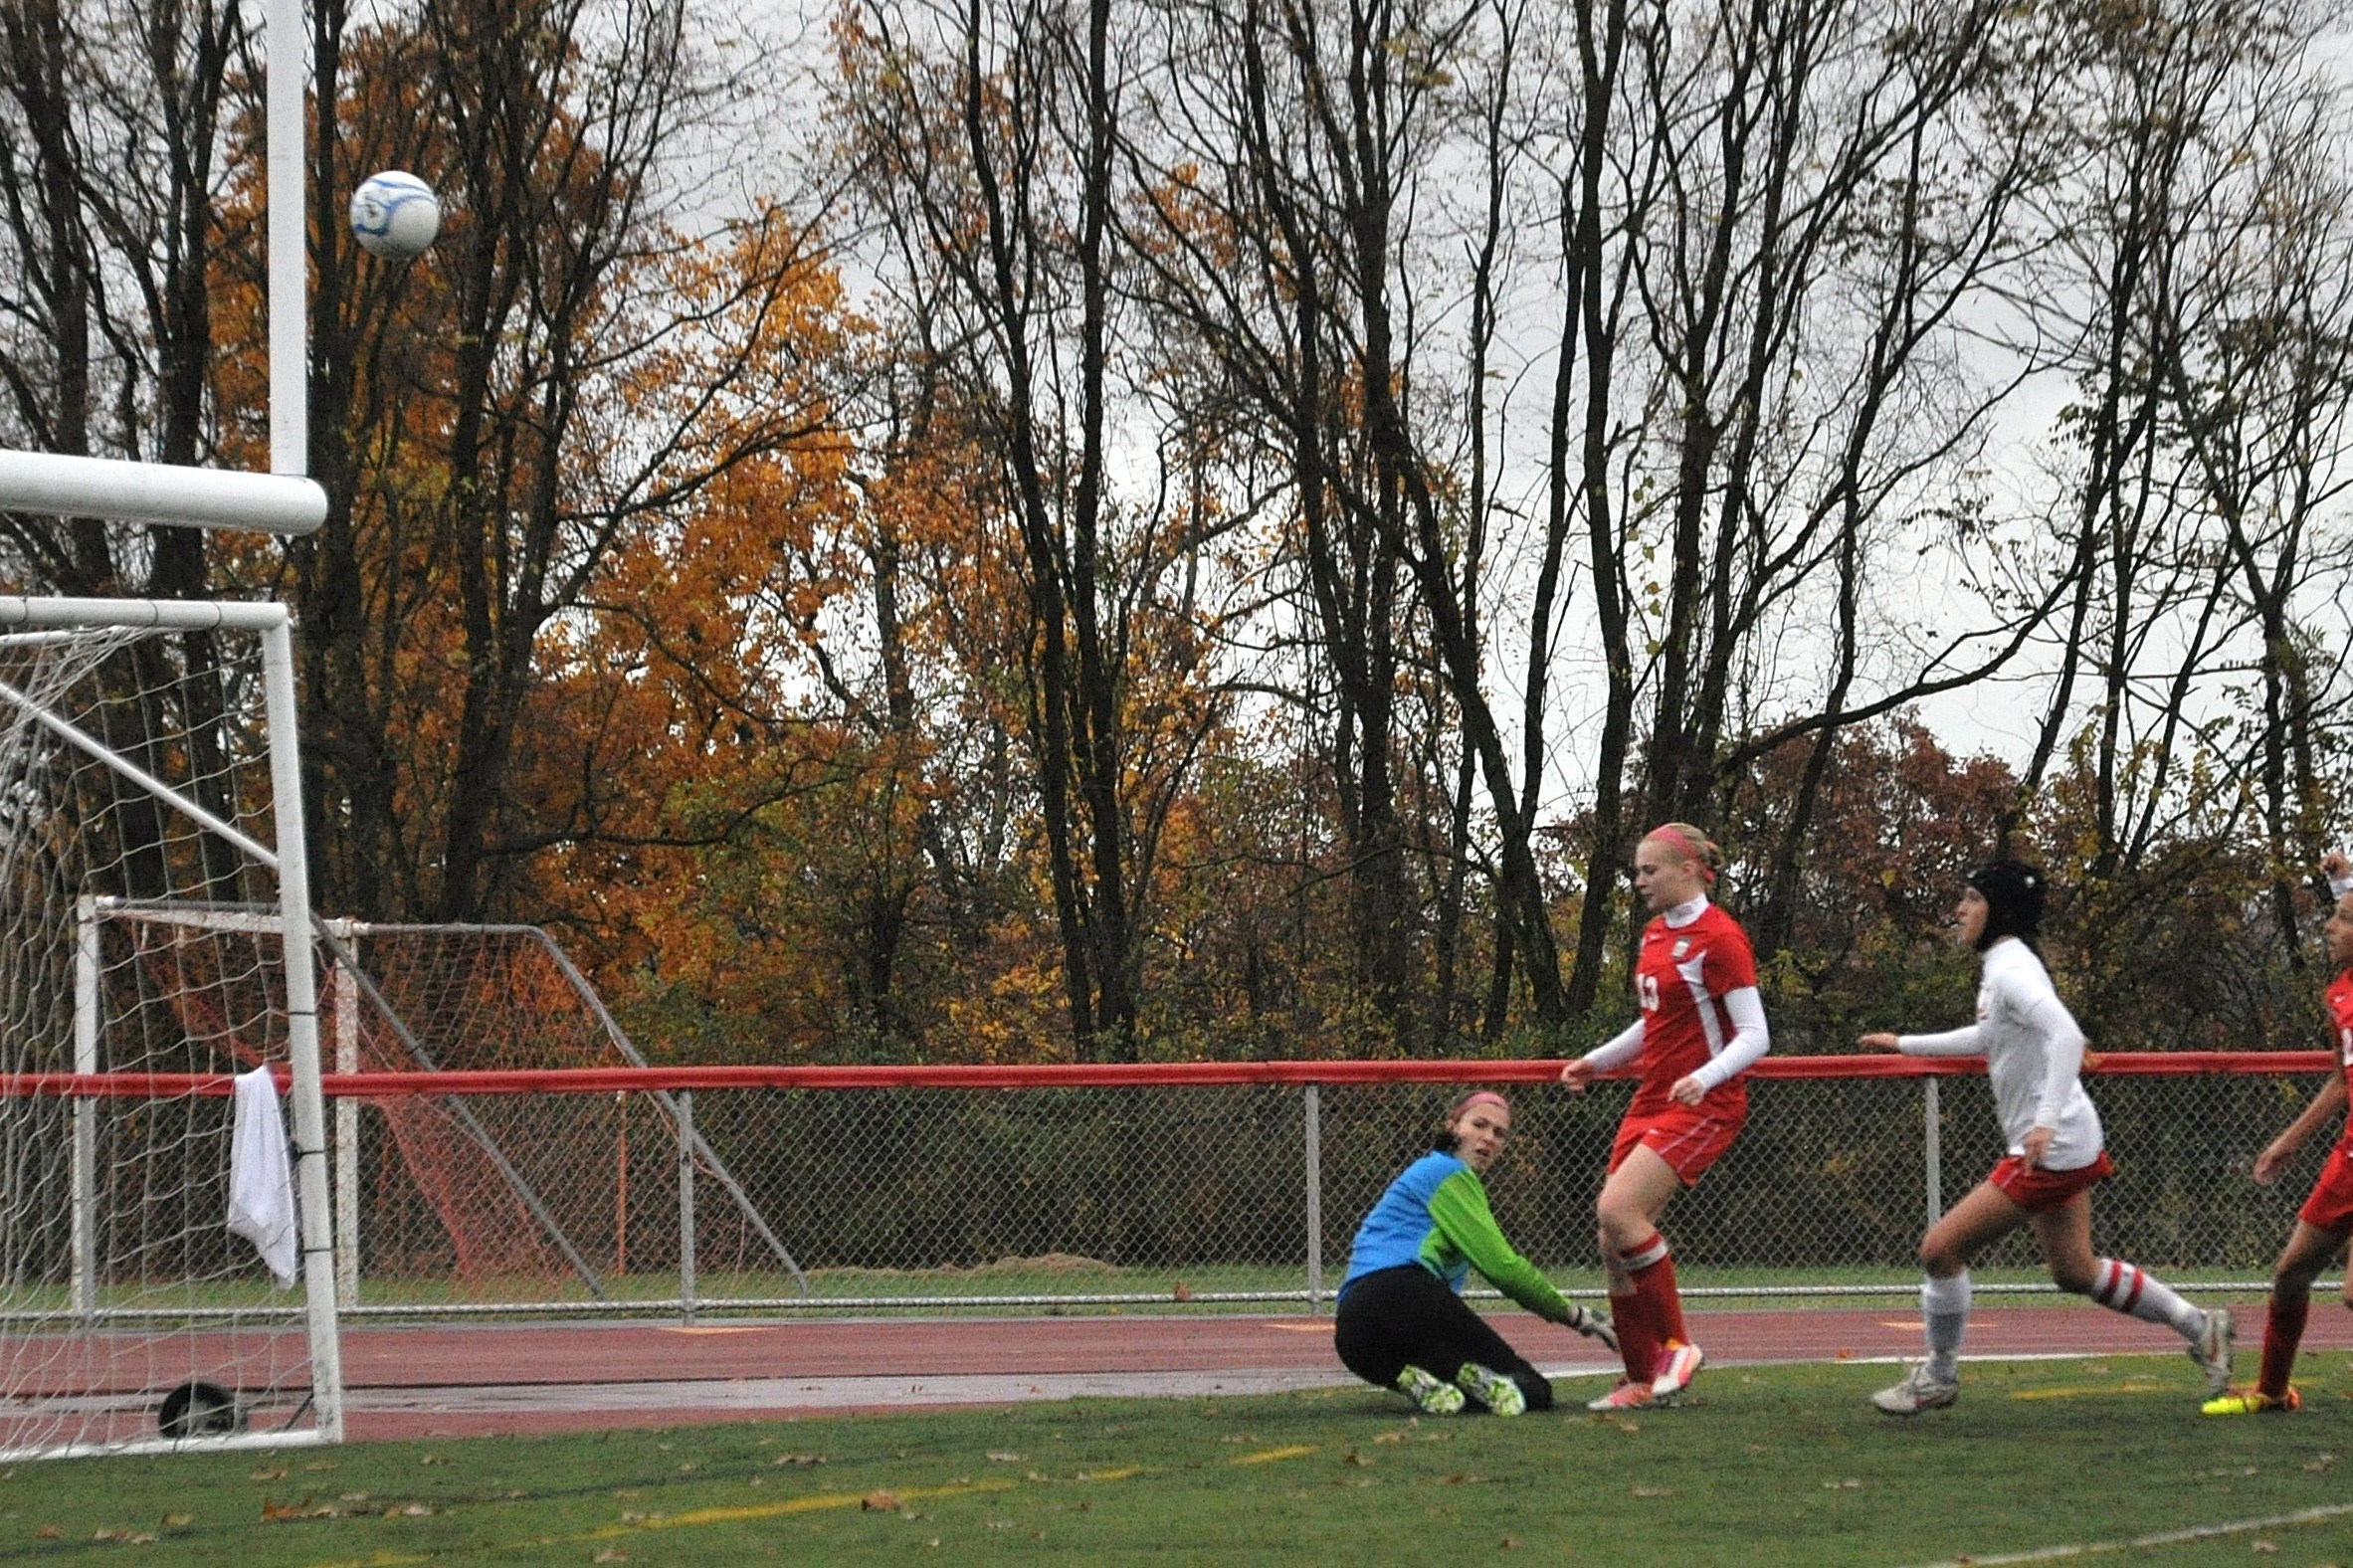 c23a54917c43fb5a6e50_GL_Goalie_Olivia_Emanuel_glances_back_to_be_sure_she_deflected_the_ball_away_from_the_goal..jpg